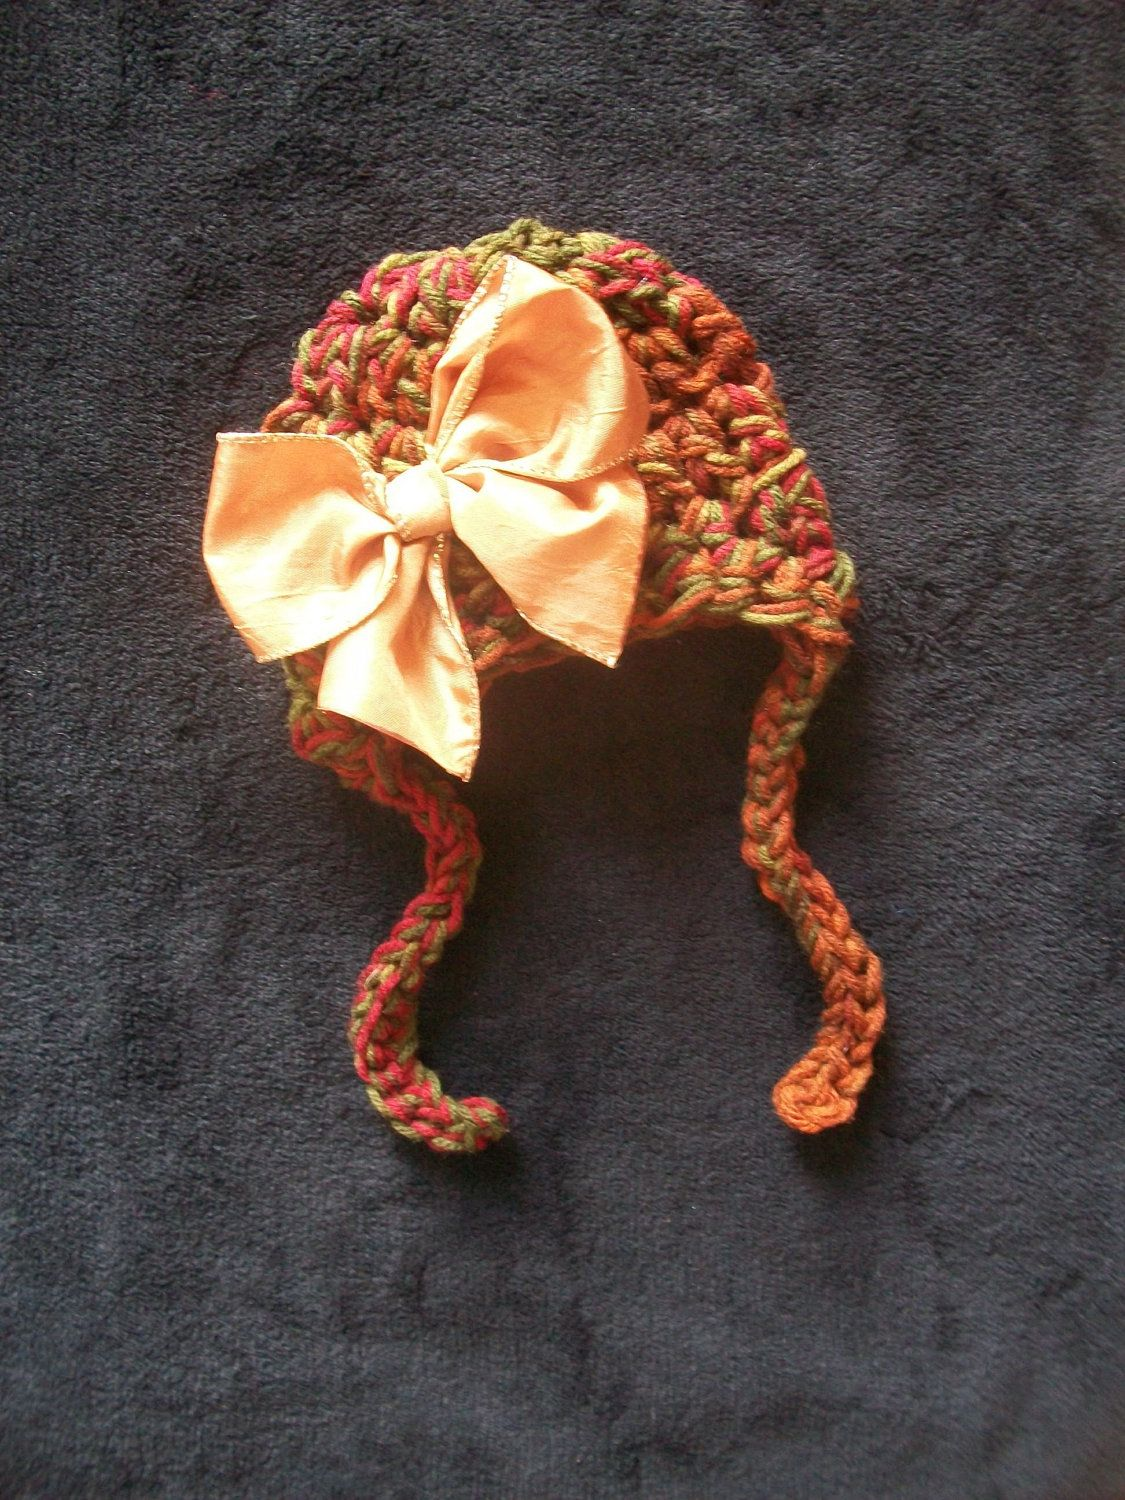 Fall Harvest Baby Hat with Earflaps, Ties, Large Golden Bow  -   Many Sizes - Preemie, Newborn, Infant. $15.00, via Etsy.